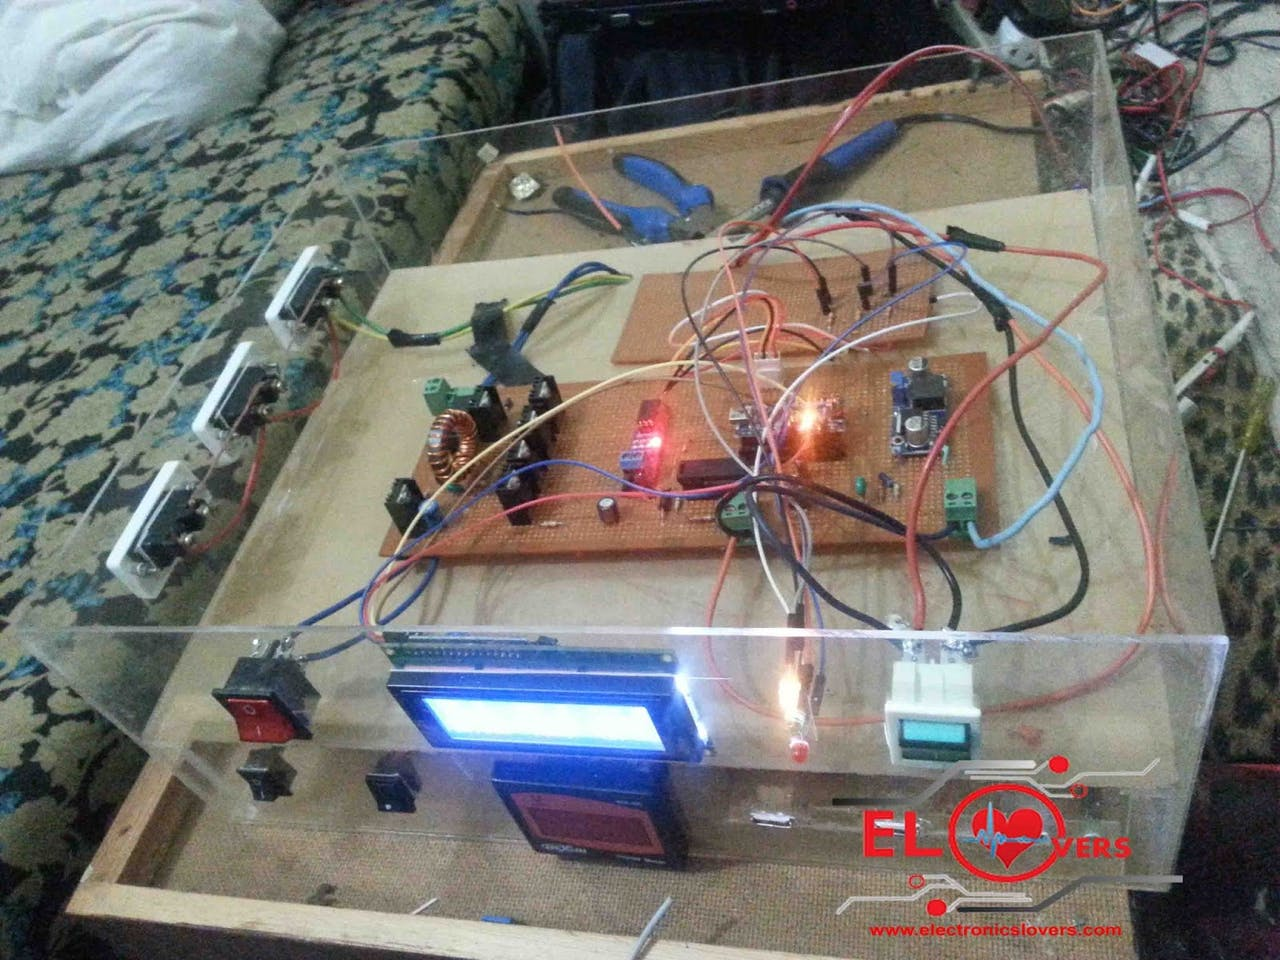 Home Made Arduino Based Mppt Charge Controller The Circuit Board A5 Notebook Is A Must Have For Lovers Of Technology